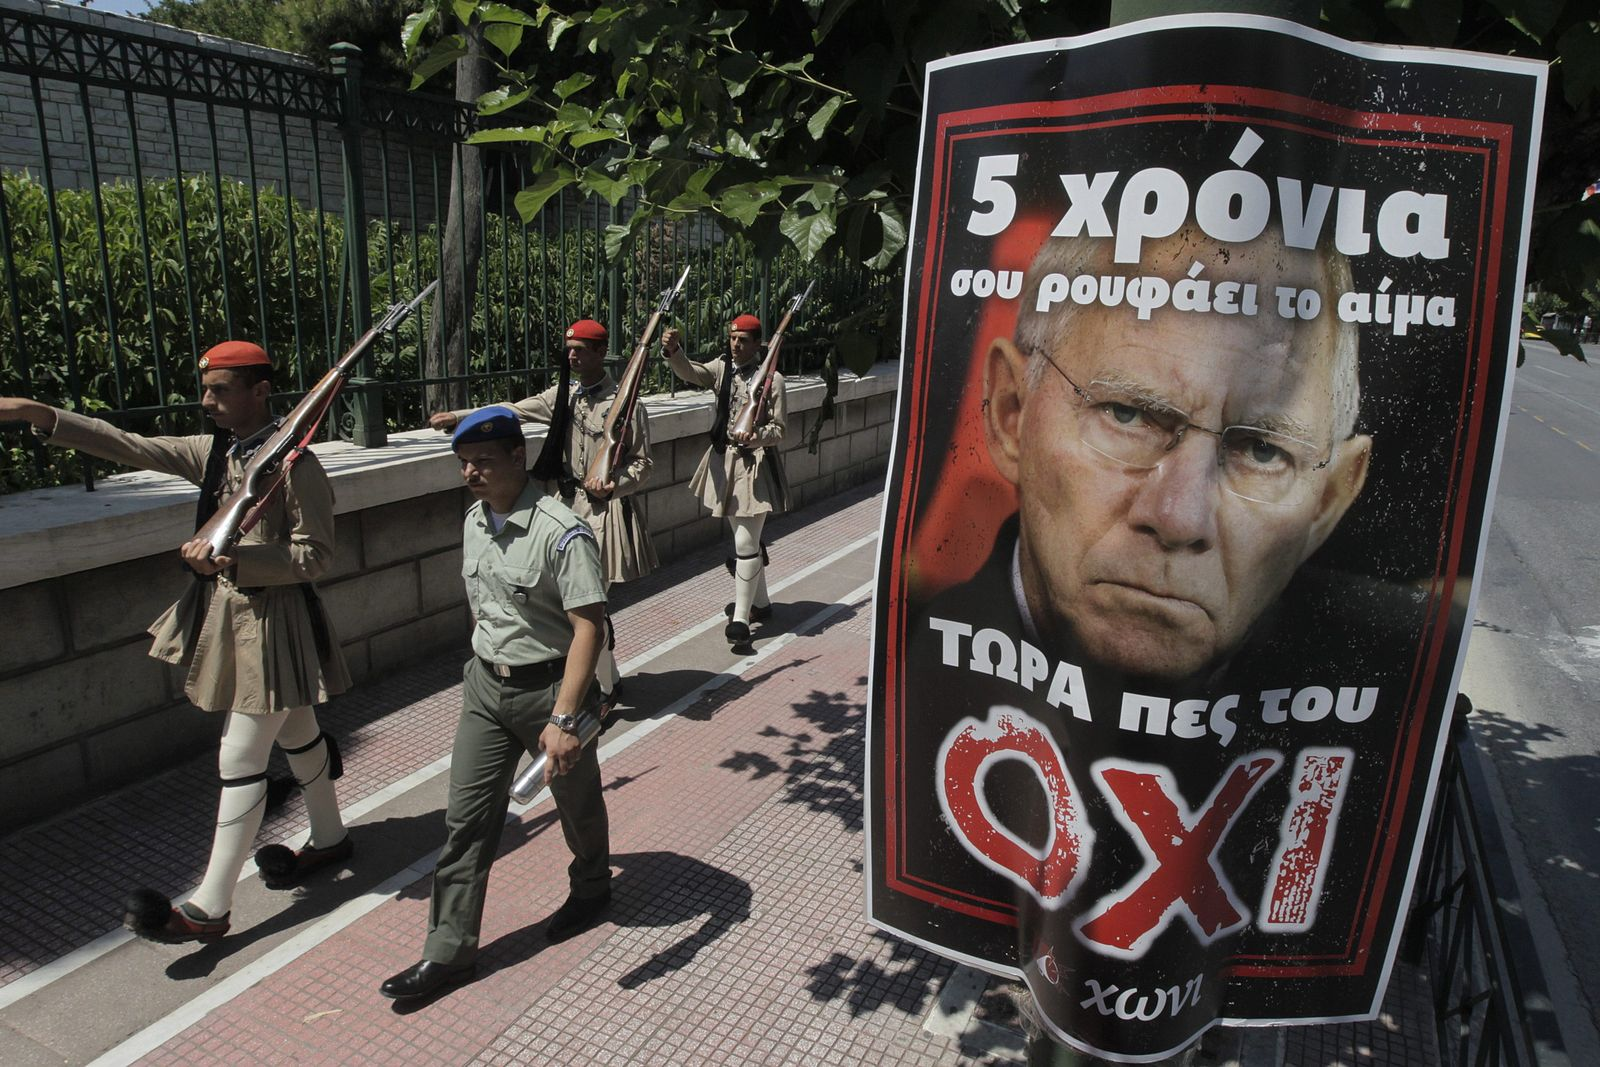 Vote NO campaign posters on Greeks bailout referendum